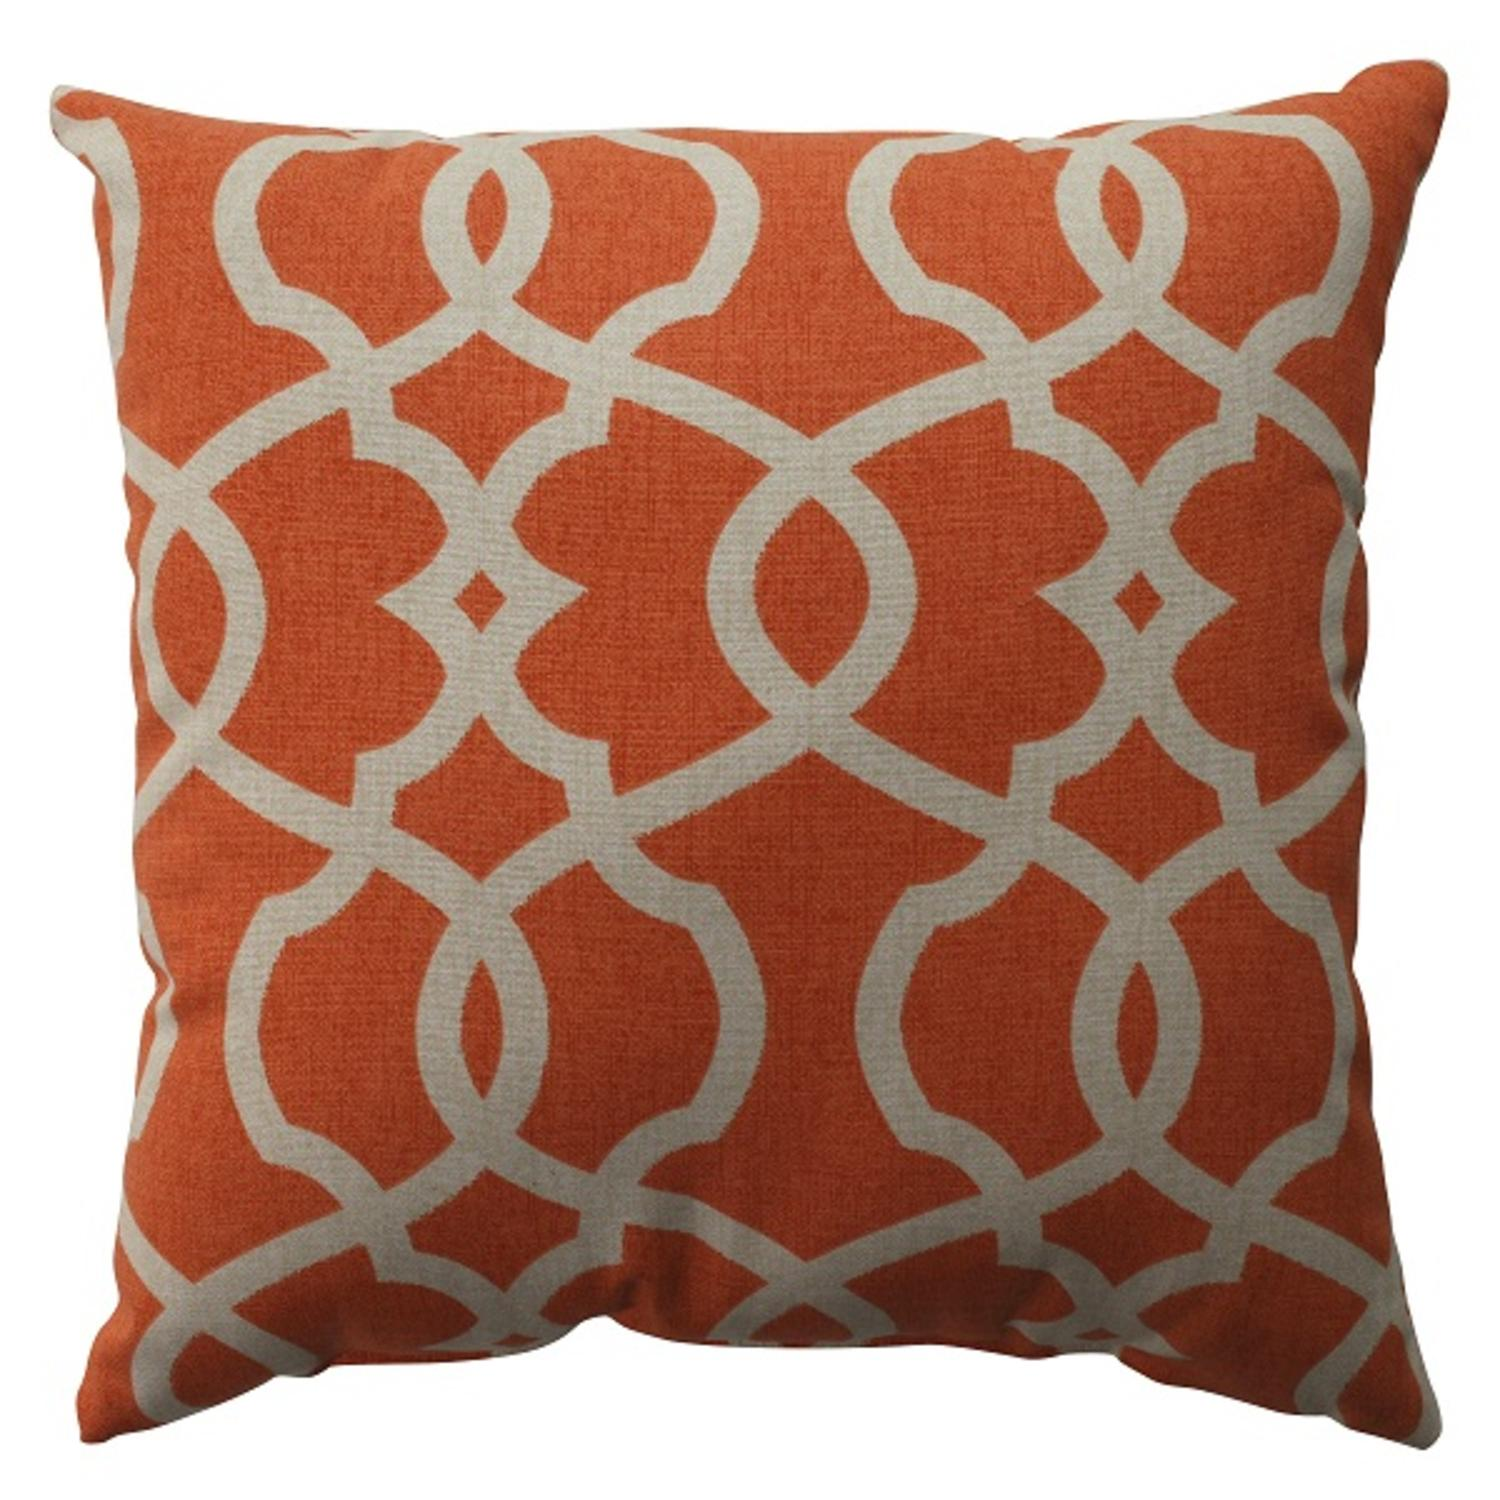 "16.5"" Citrus Orange Scrolling Decorative Throw Pillow"